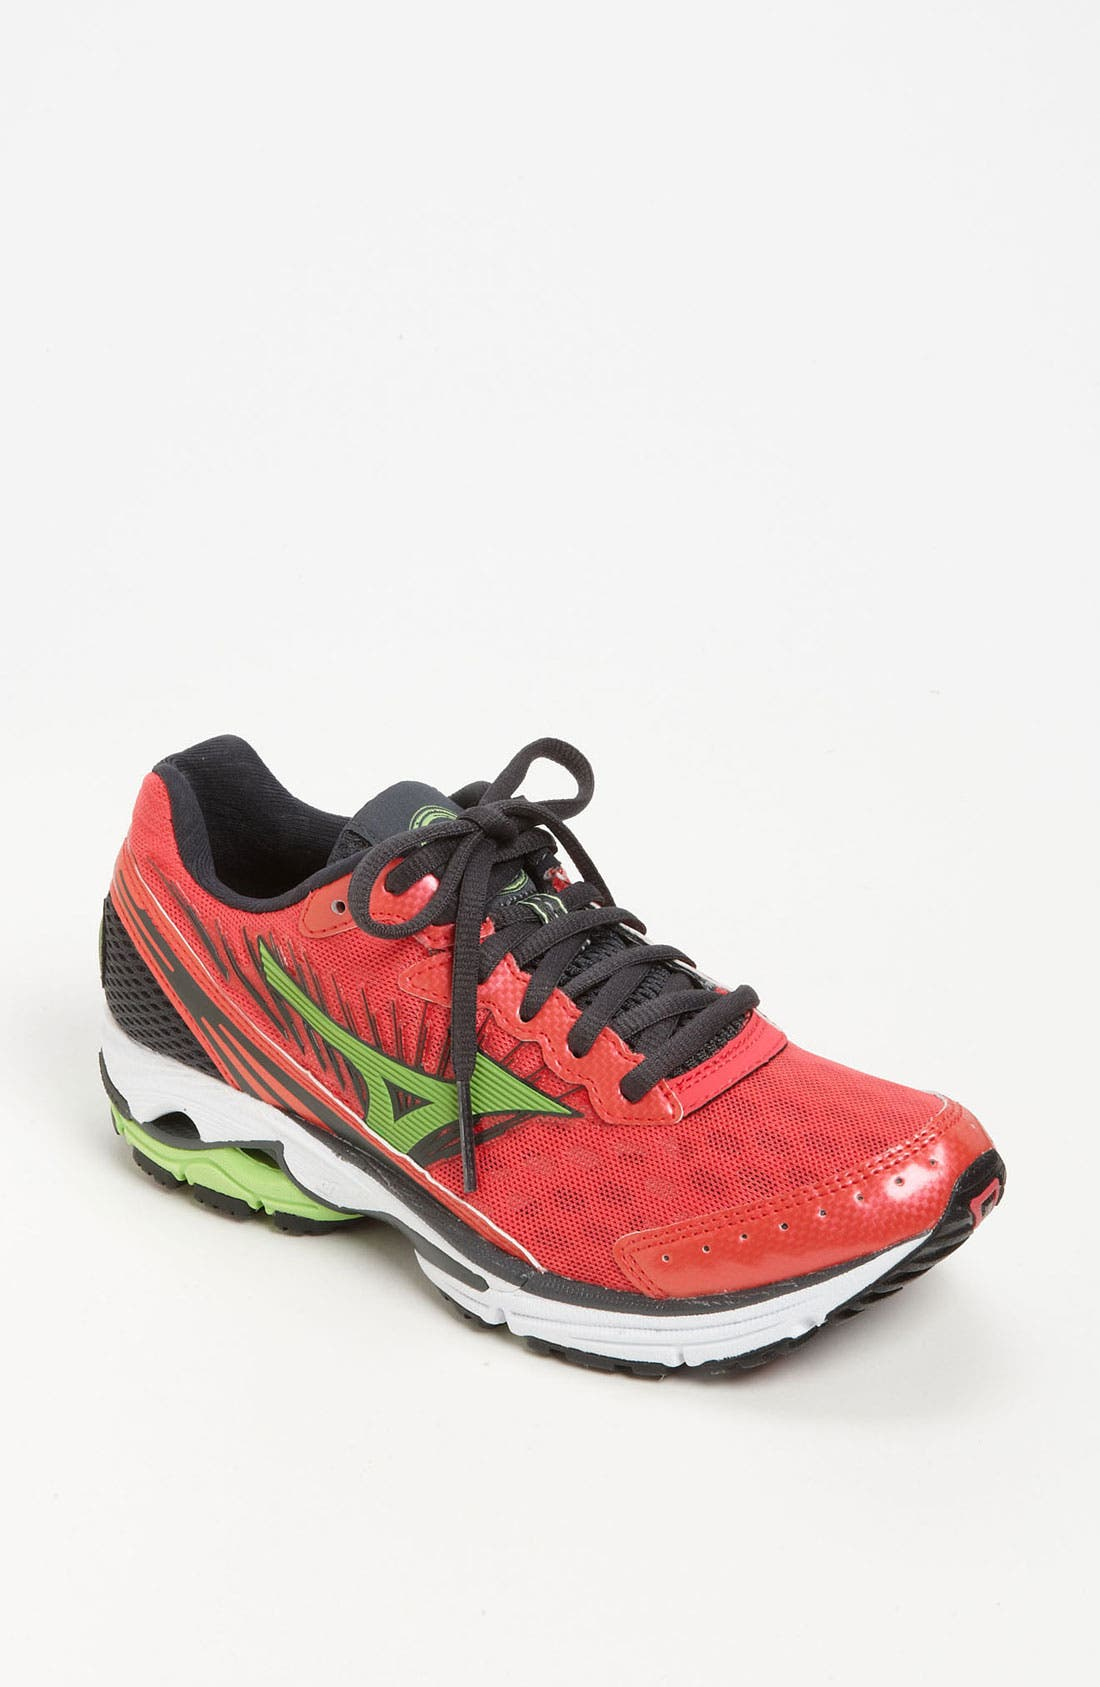 Alternate Image 1 Selected - Mizuno 'Wave Rider 16' Running Shoe (Women)(Regular Retail Price: $114.95)